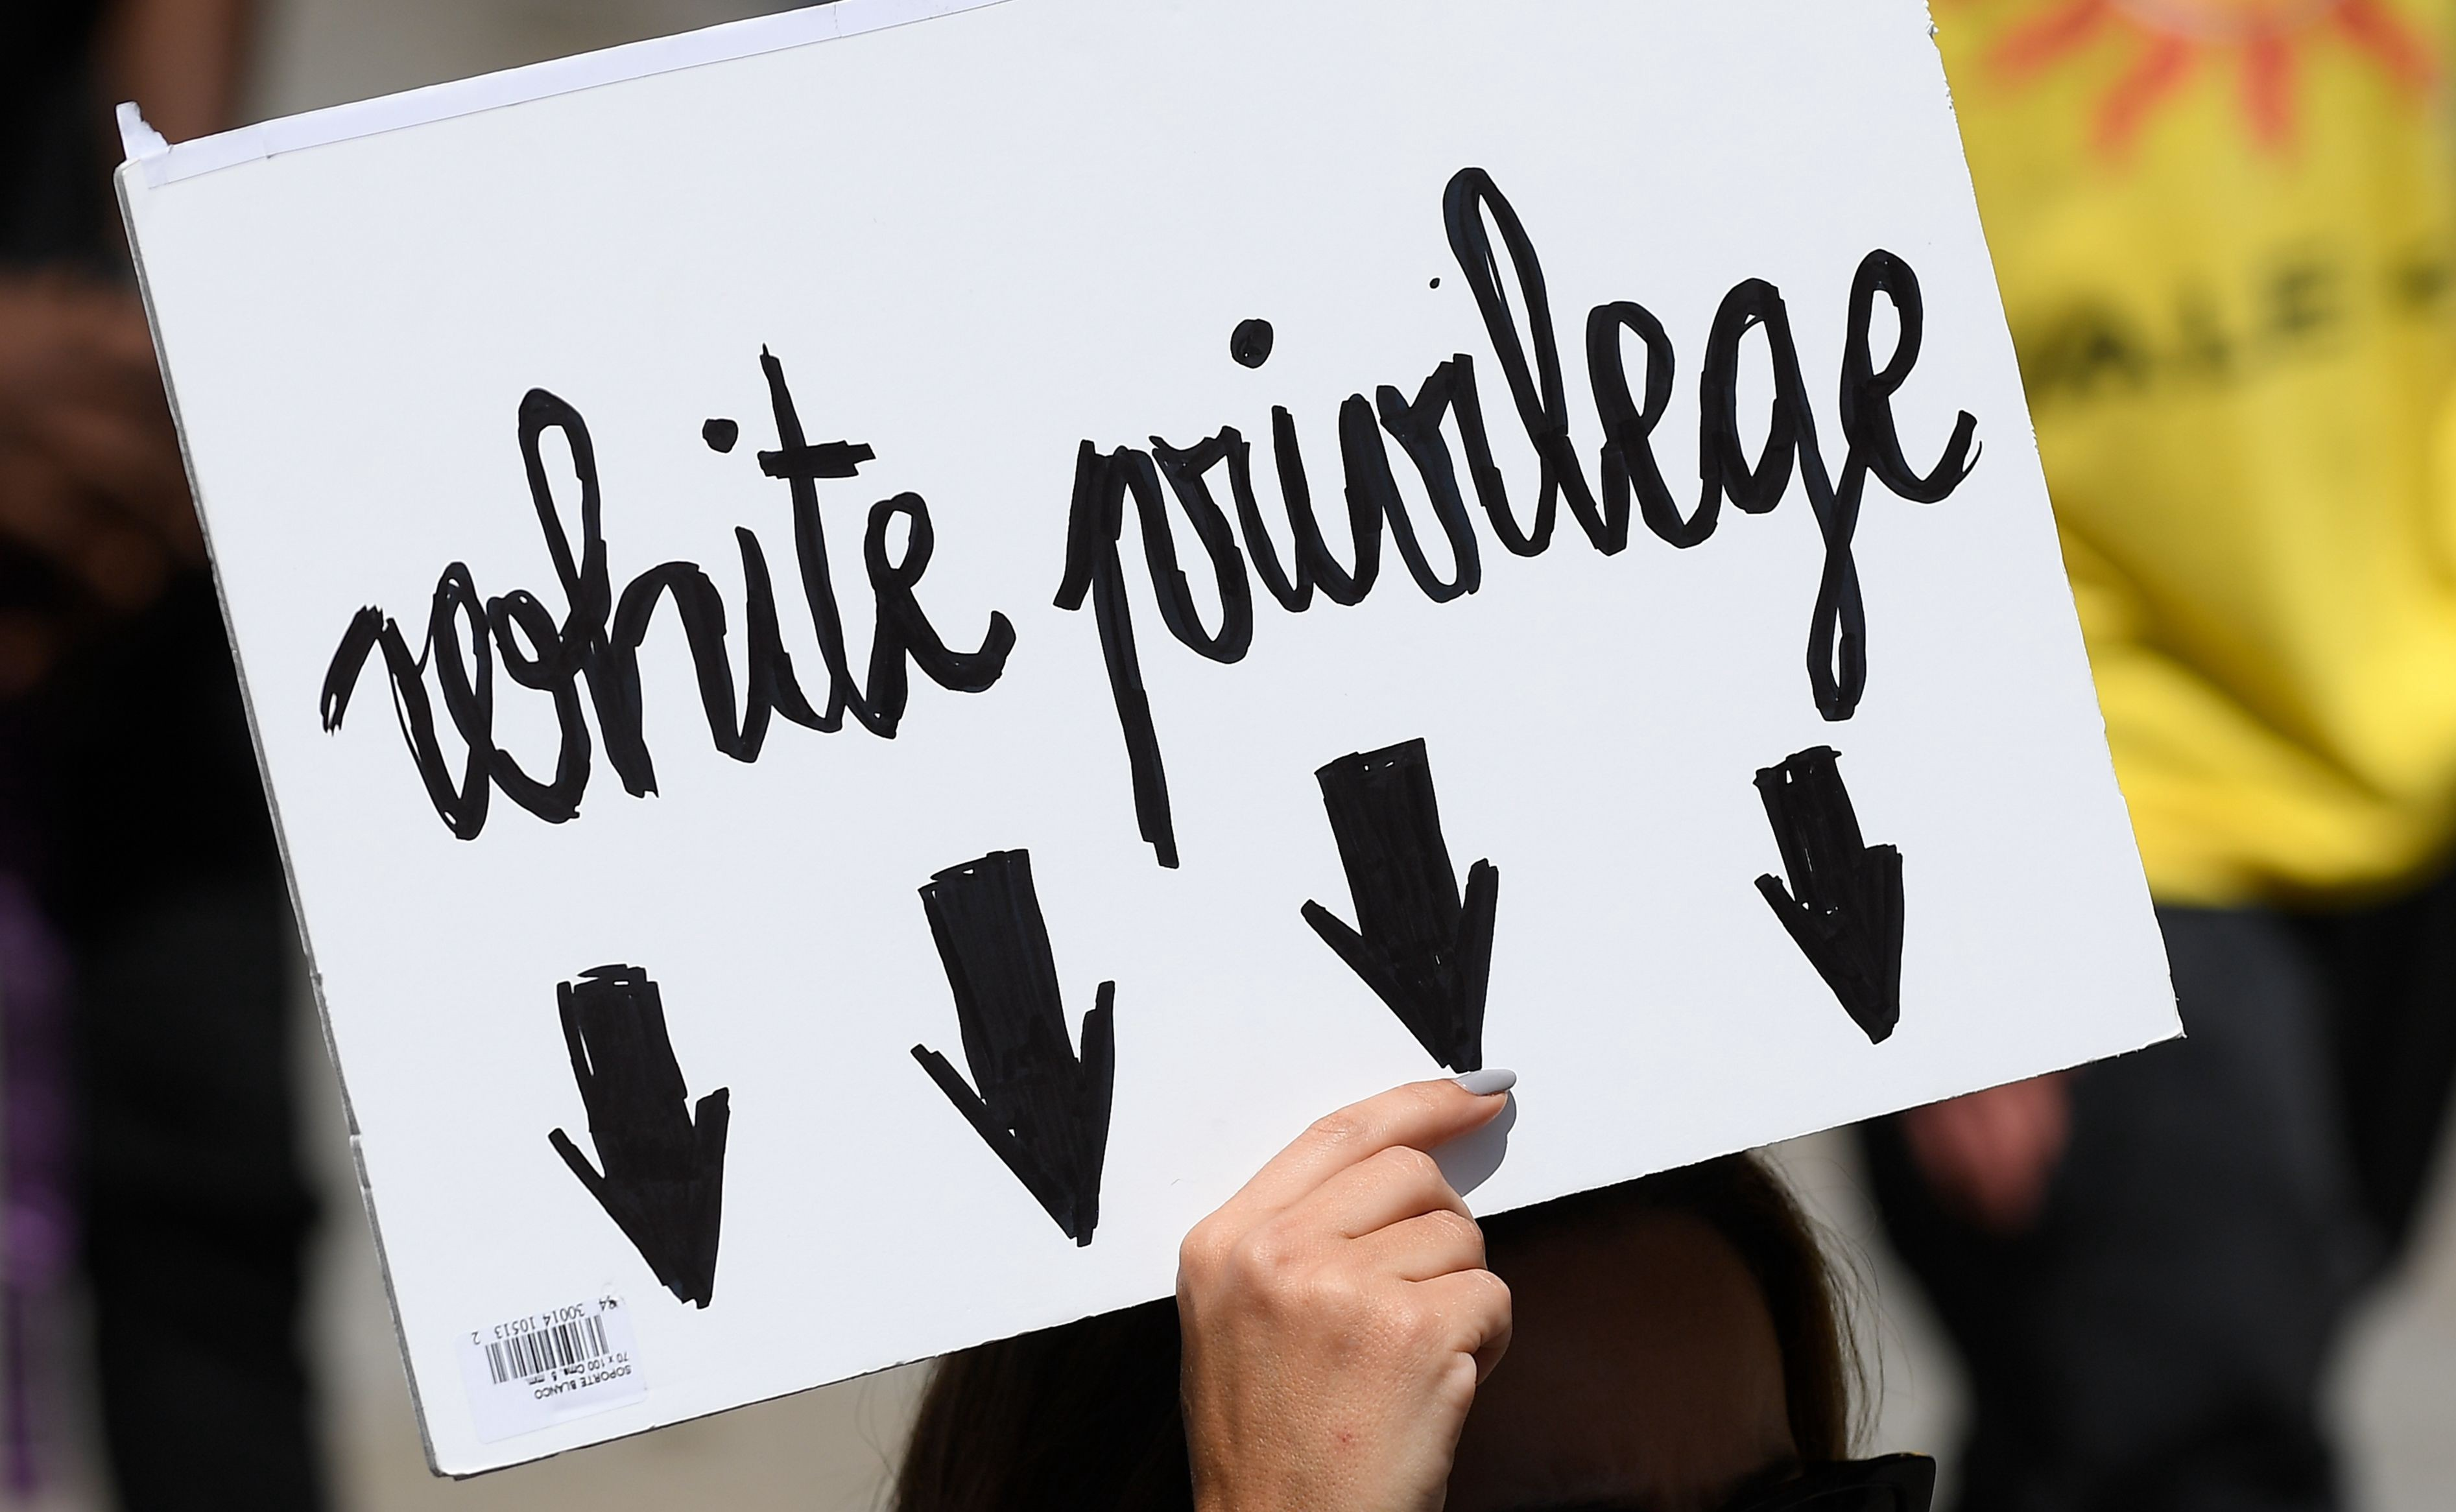 """A woman holding up a sign reading """"White privilege"""" with arrows pointing downward."""